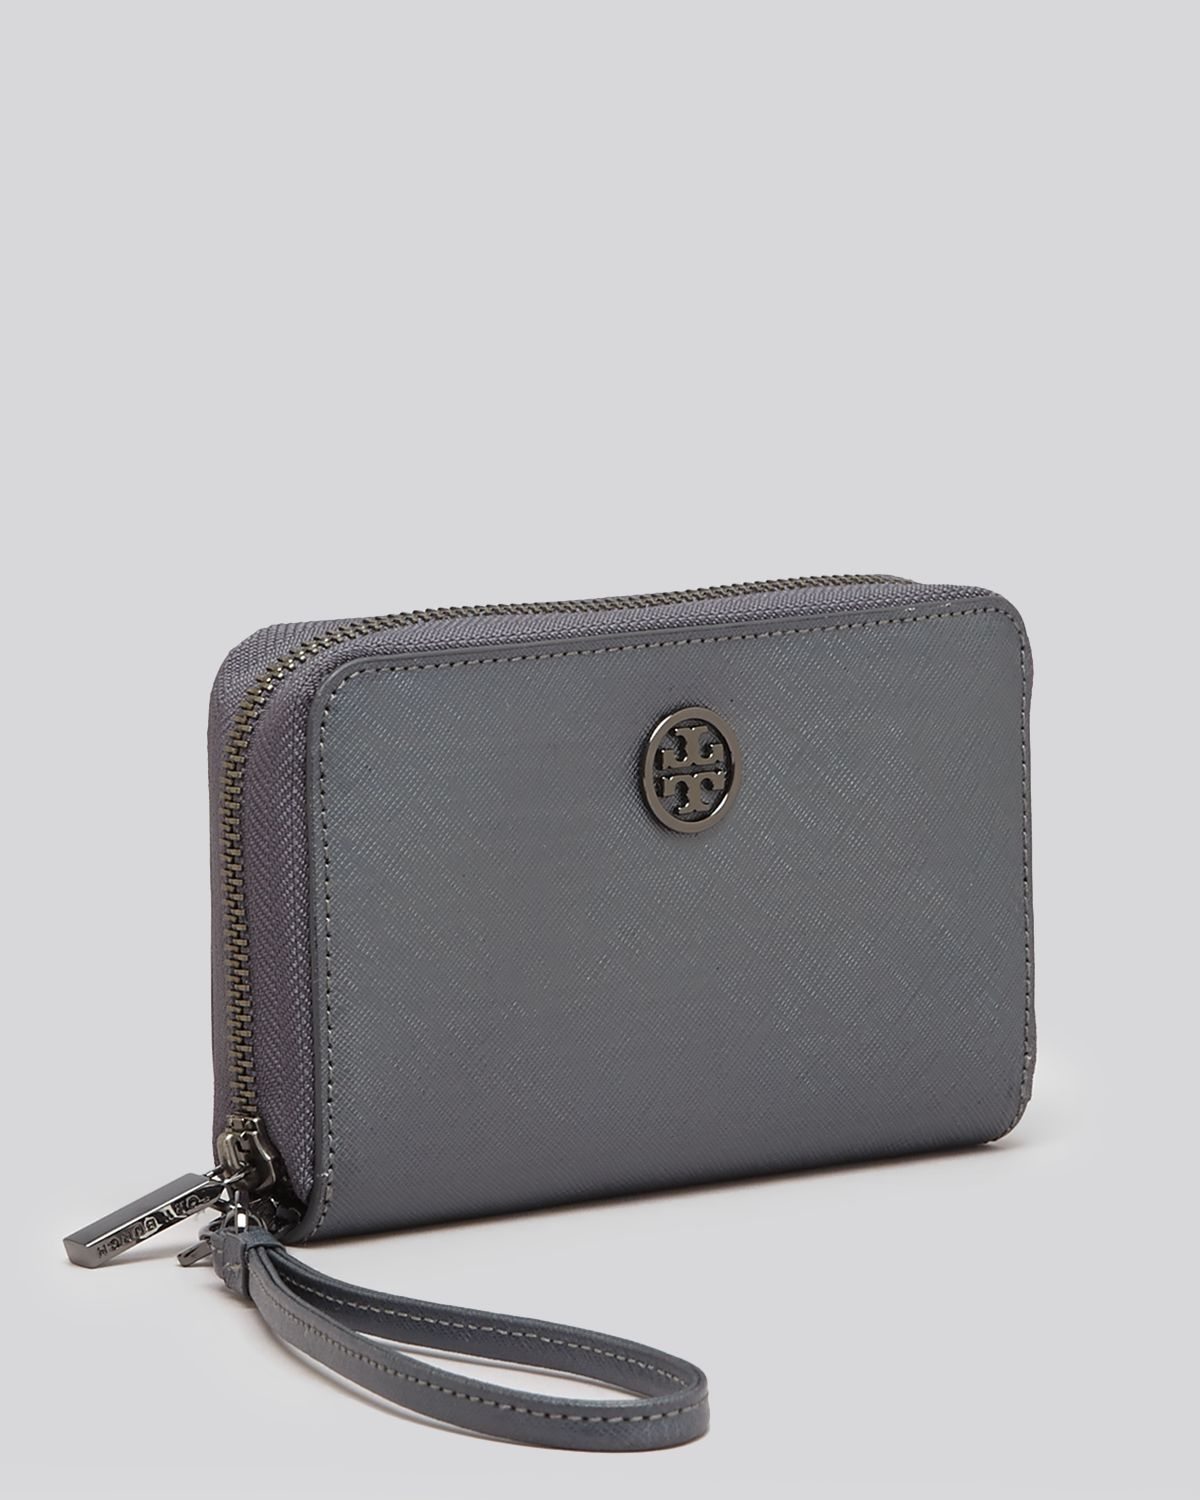 iphone 5 wristlet burch iphone 5 wristlet robinson ologram in gray lyst 11067